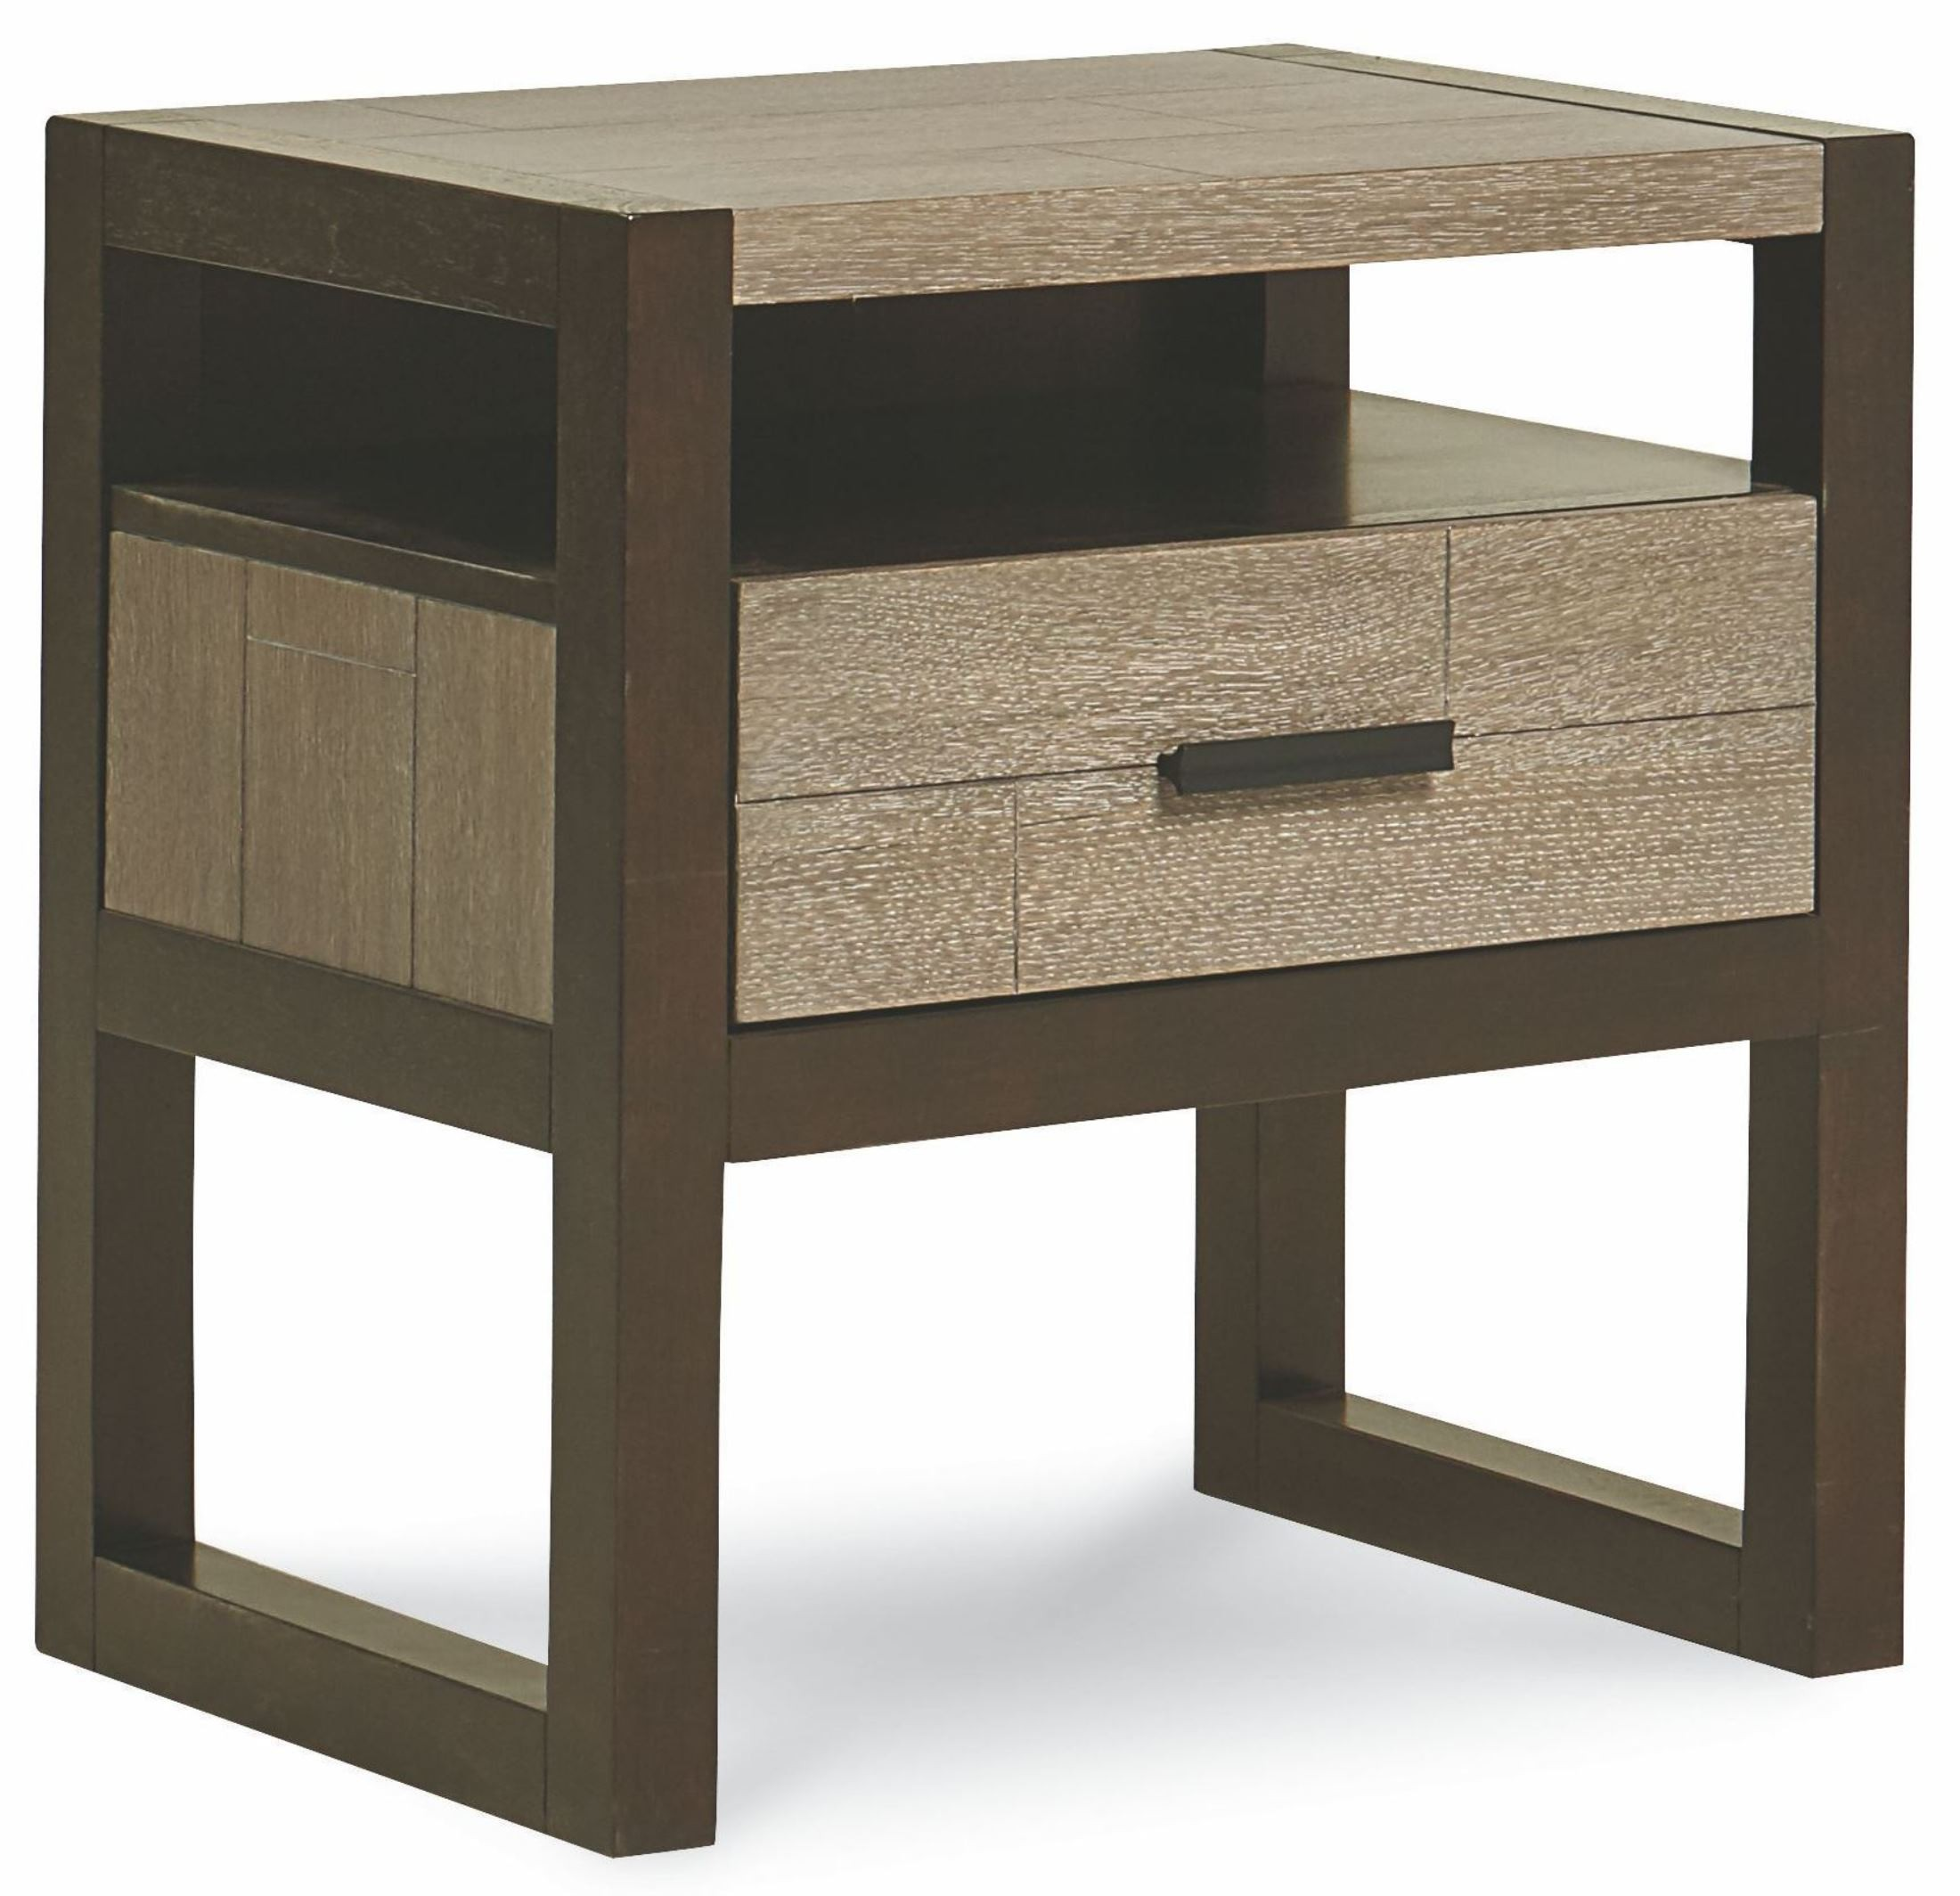 helix charcoal stone 1 drawer night stand 4660 3101. Black Bedroom Furniture Sets. Home Design Ideas